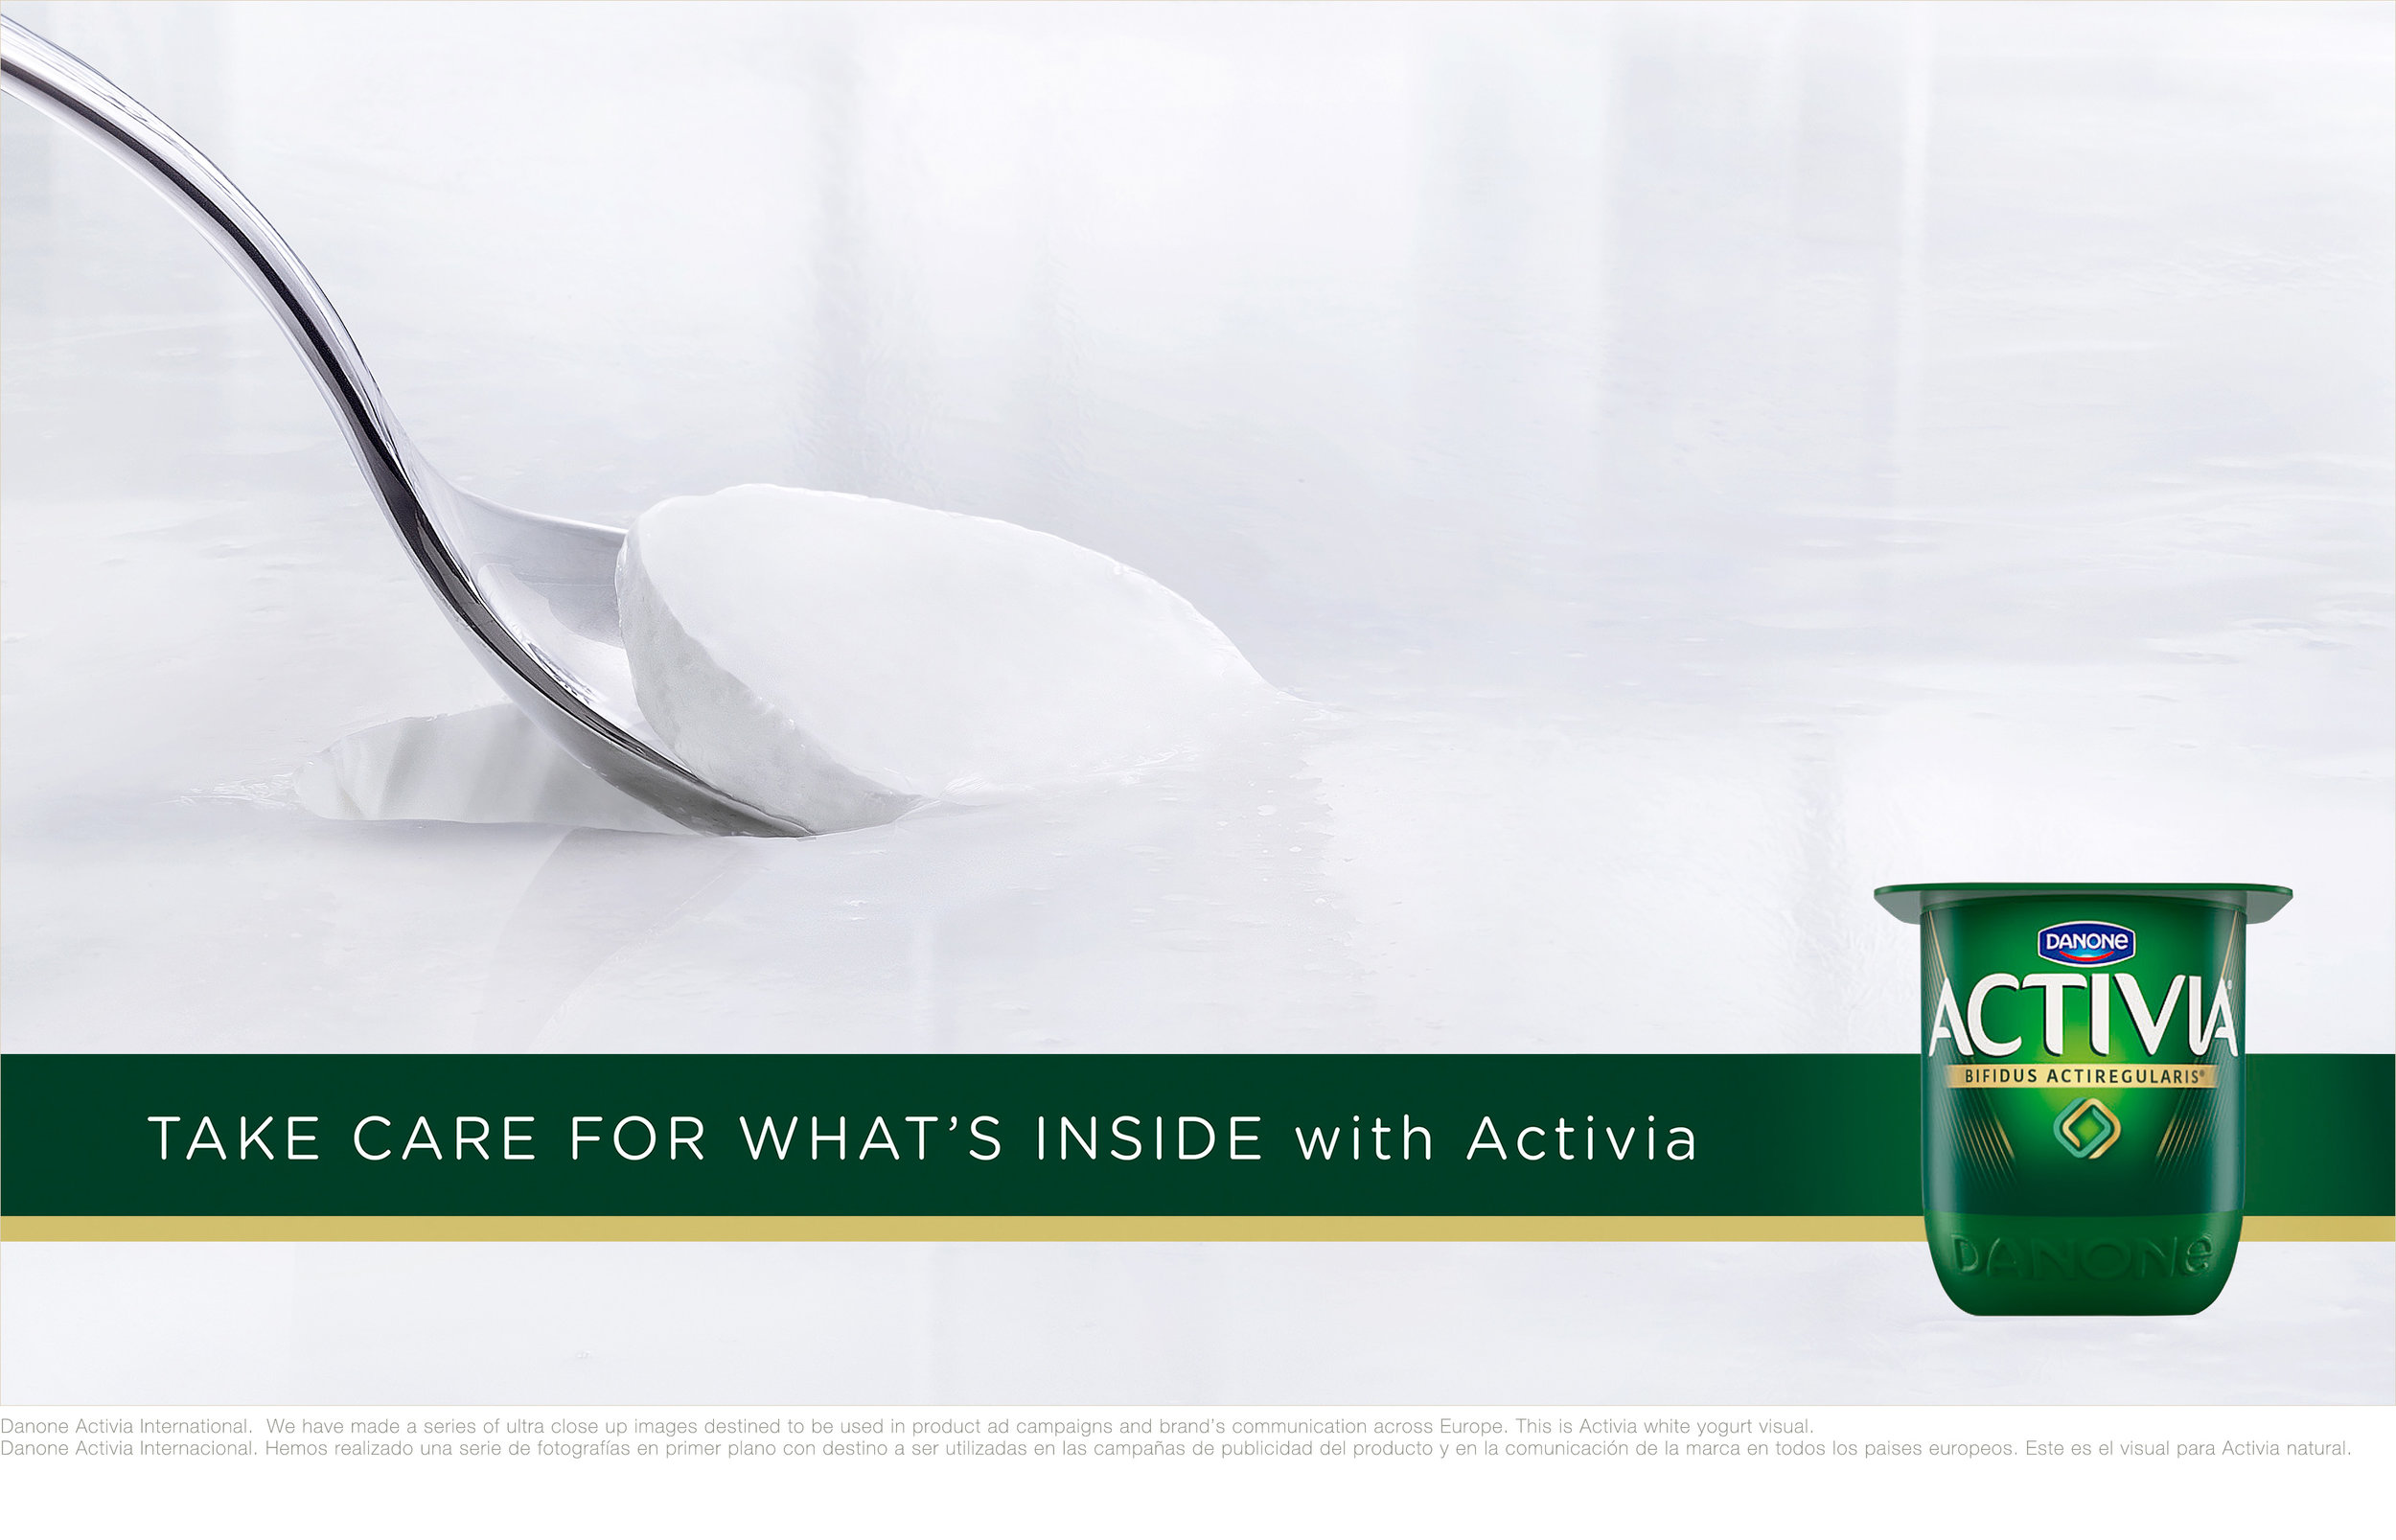 1723a-Activia-INT-SET-White-Wide-02.jpg